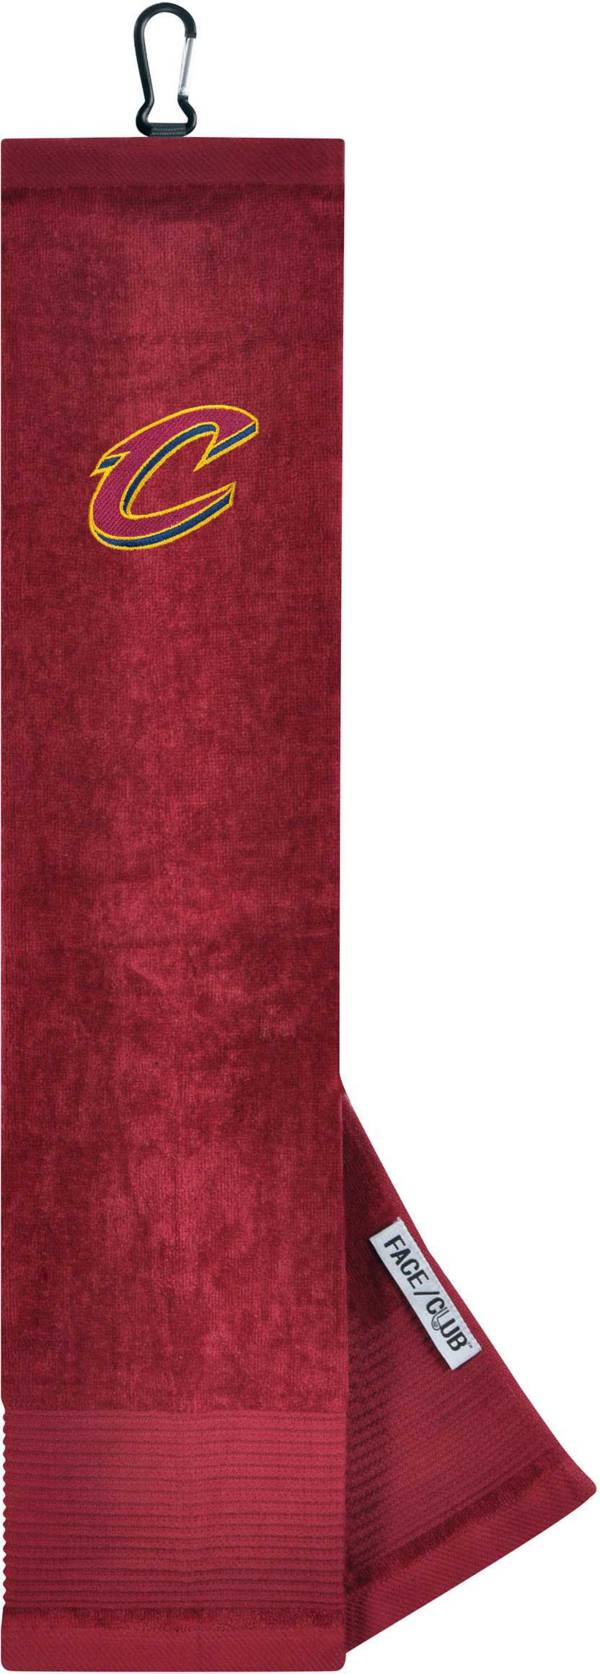 Team Effort Cleveland Cavaliers Embroidered Face/Club Tri-Fold Towel product image